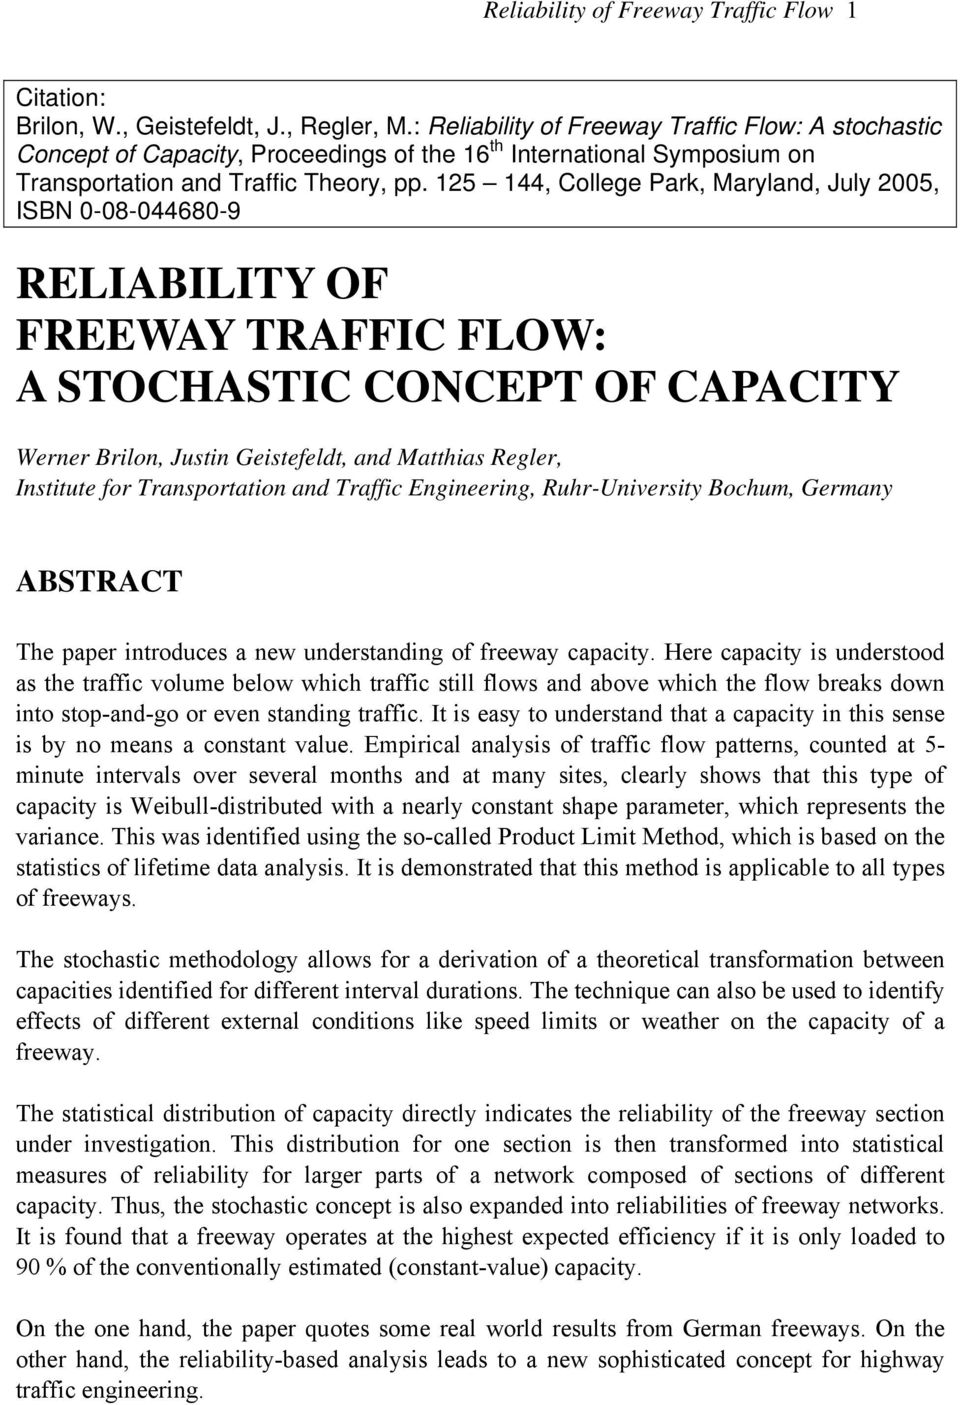 125 144, College Park, Maryland, July 2005, ISBN 0-08-044680-9 RELIABILITY OF FREEWAY TRAFFIC FLOW: A STOCHASTIC CONCEPT OF CAPACITY Werner Brilon, Justin Geistefeldt, and Matthias Regler, Institute